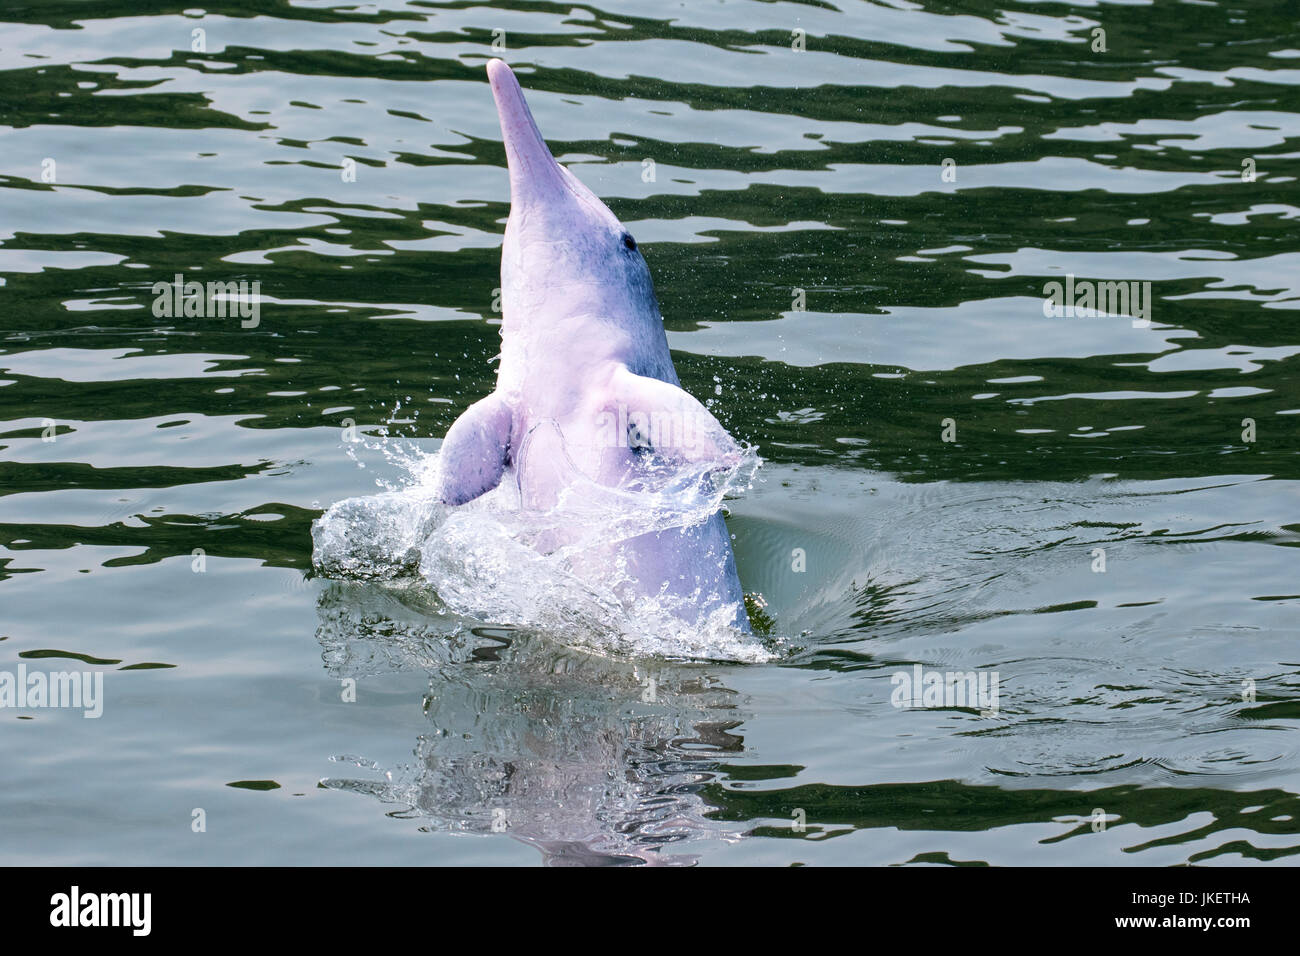 A young playful Indo-Pacific Humpback Dolphin (Sousa chinensis) making a splash in Hong Kong waters - Stock Image